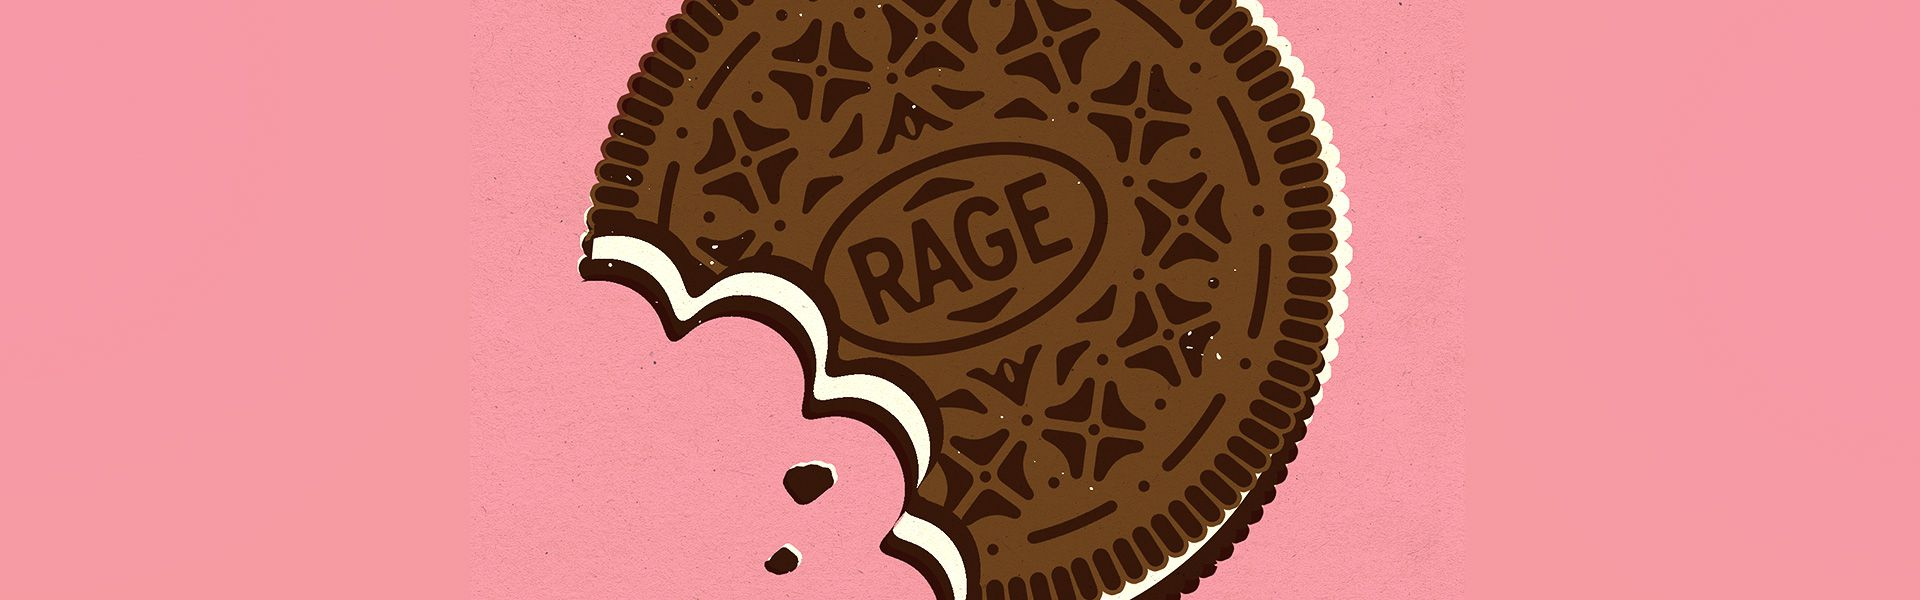 Rage Against the Haze - Oreo Cookie Illustration